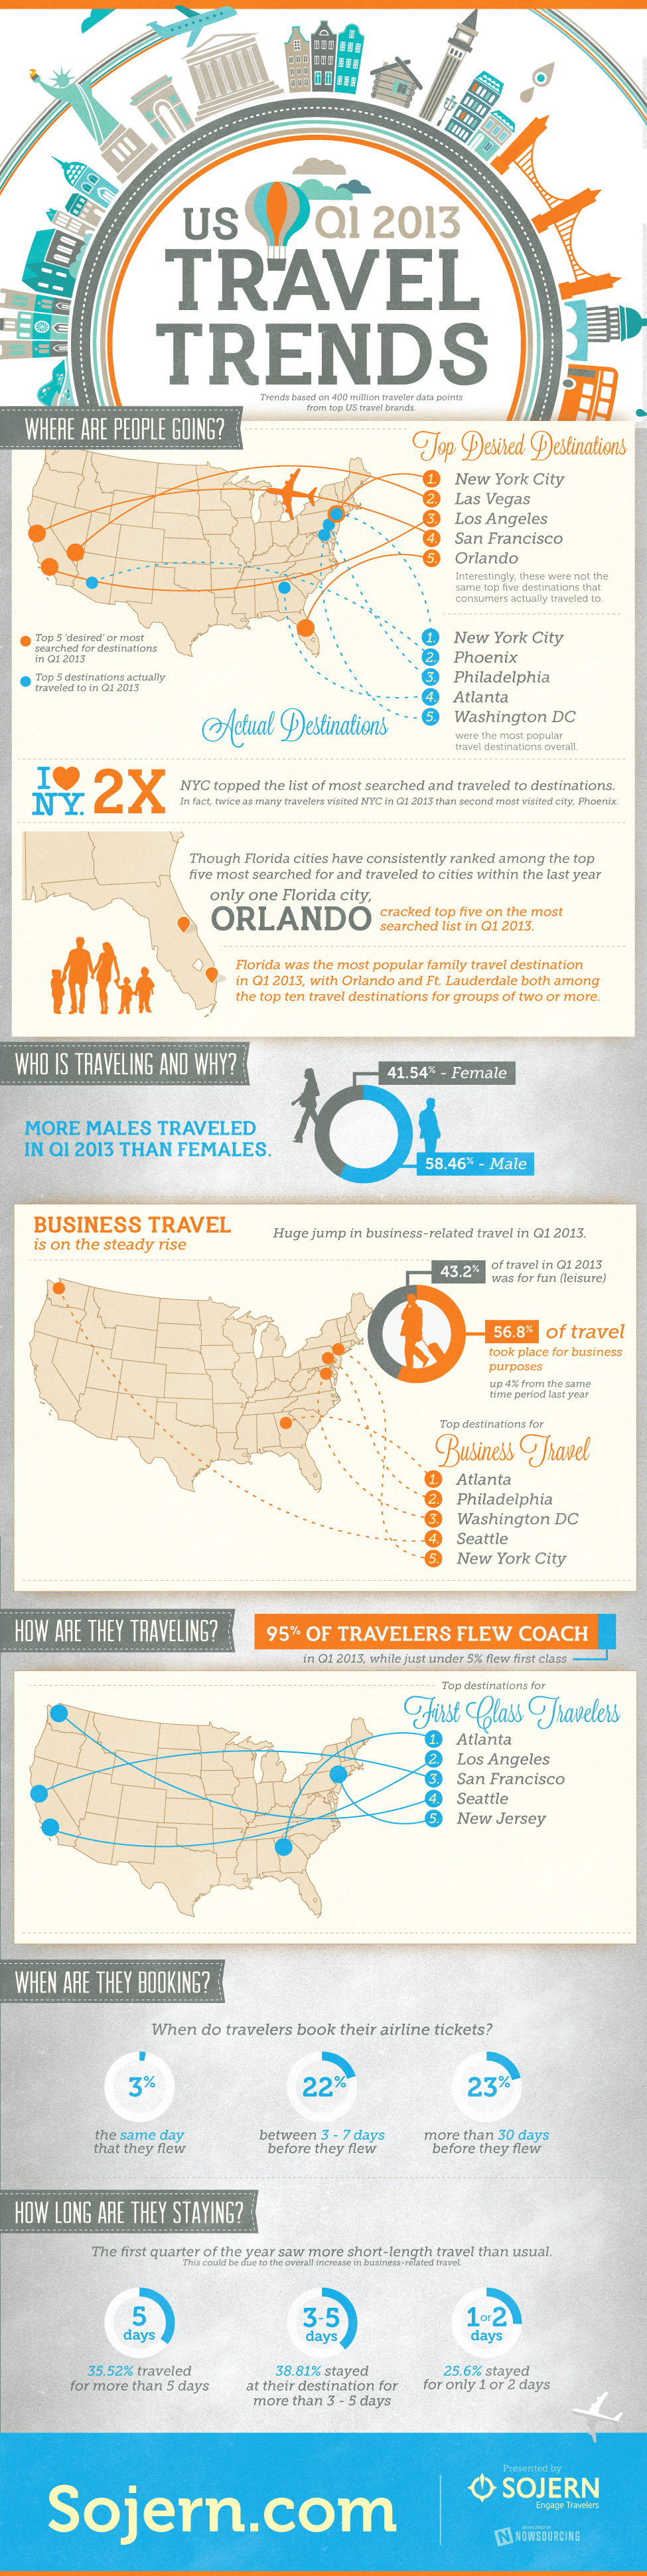 US Travel Trends Q1 2013